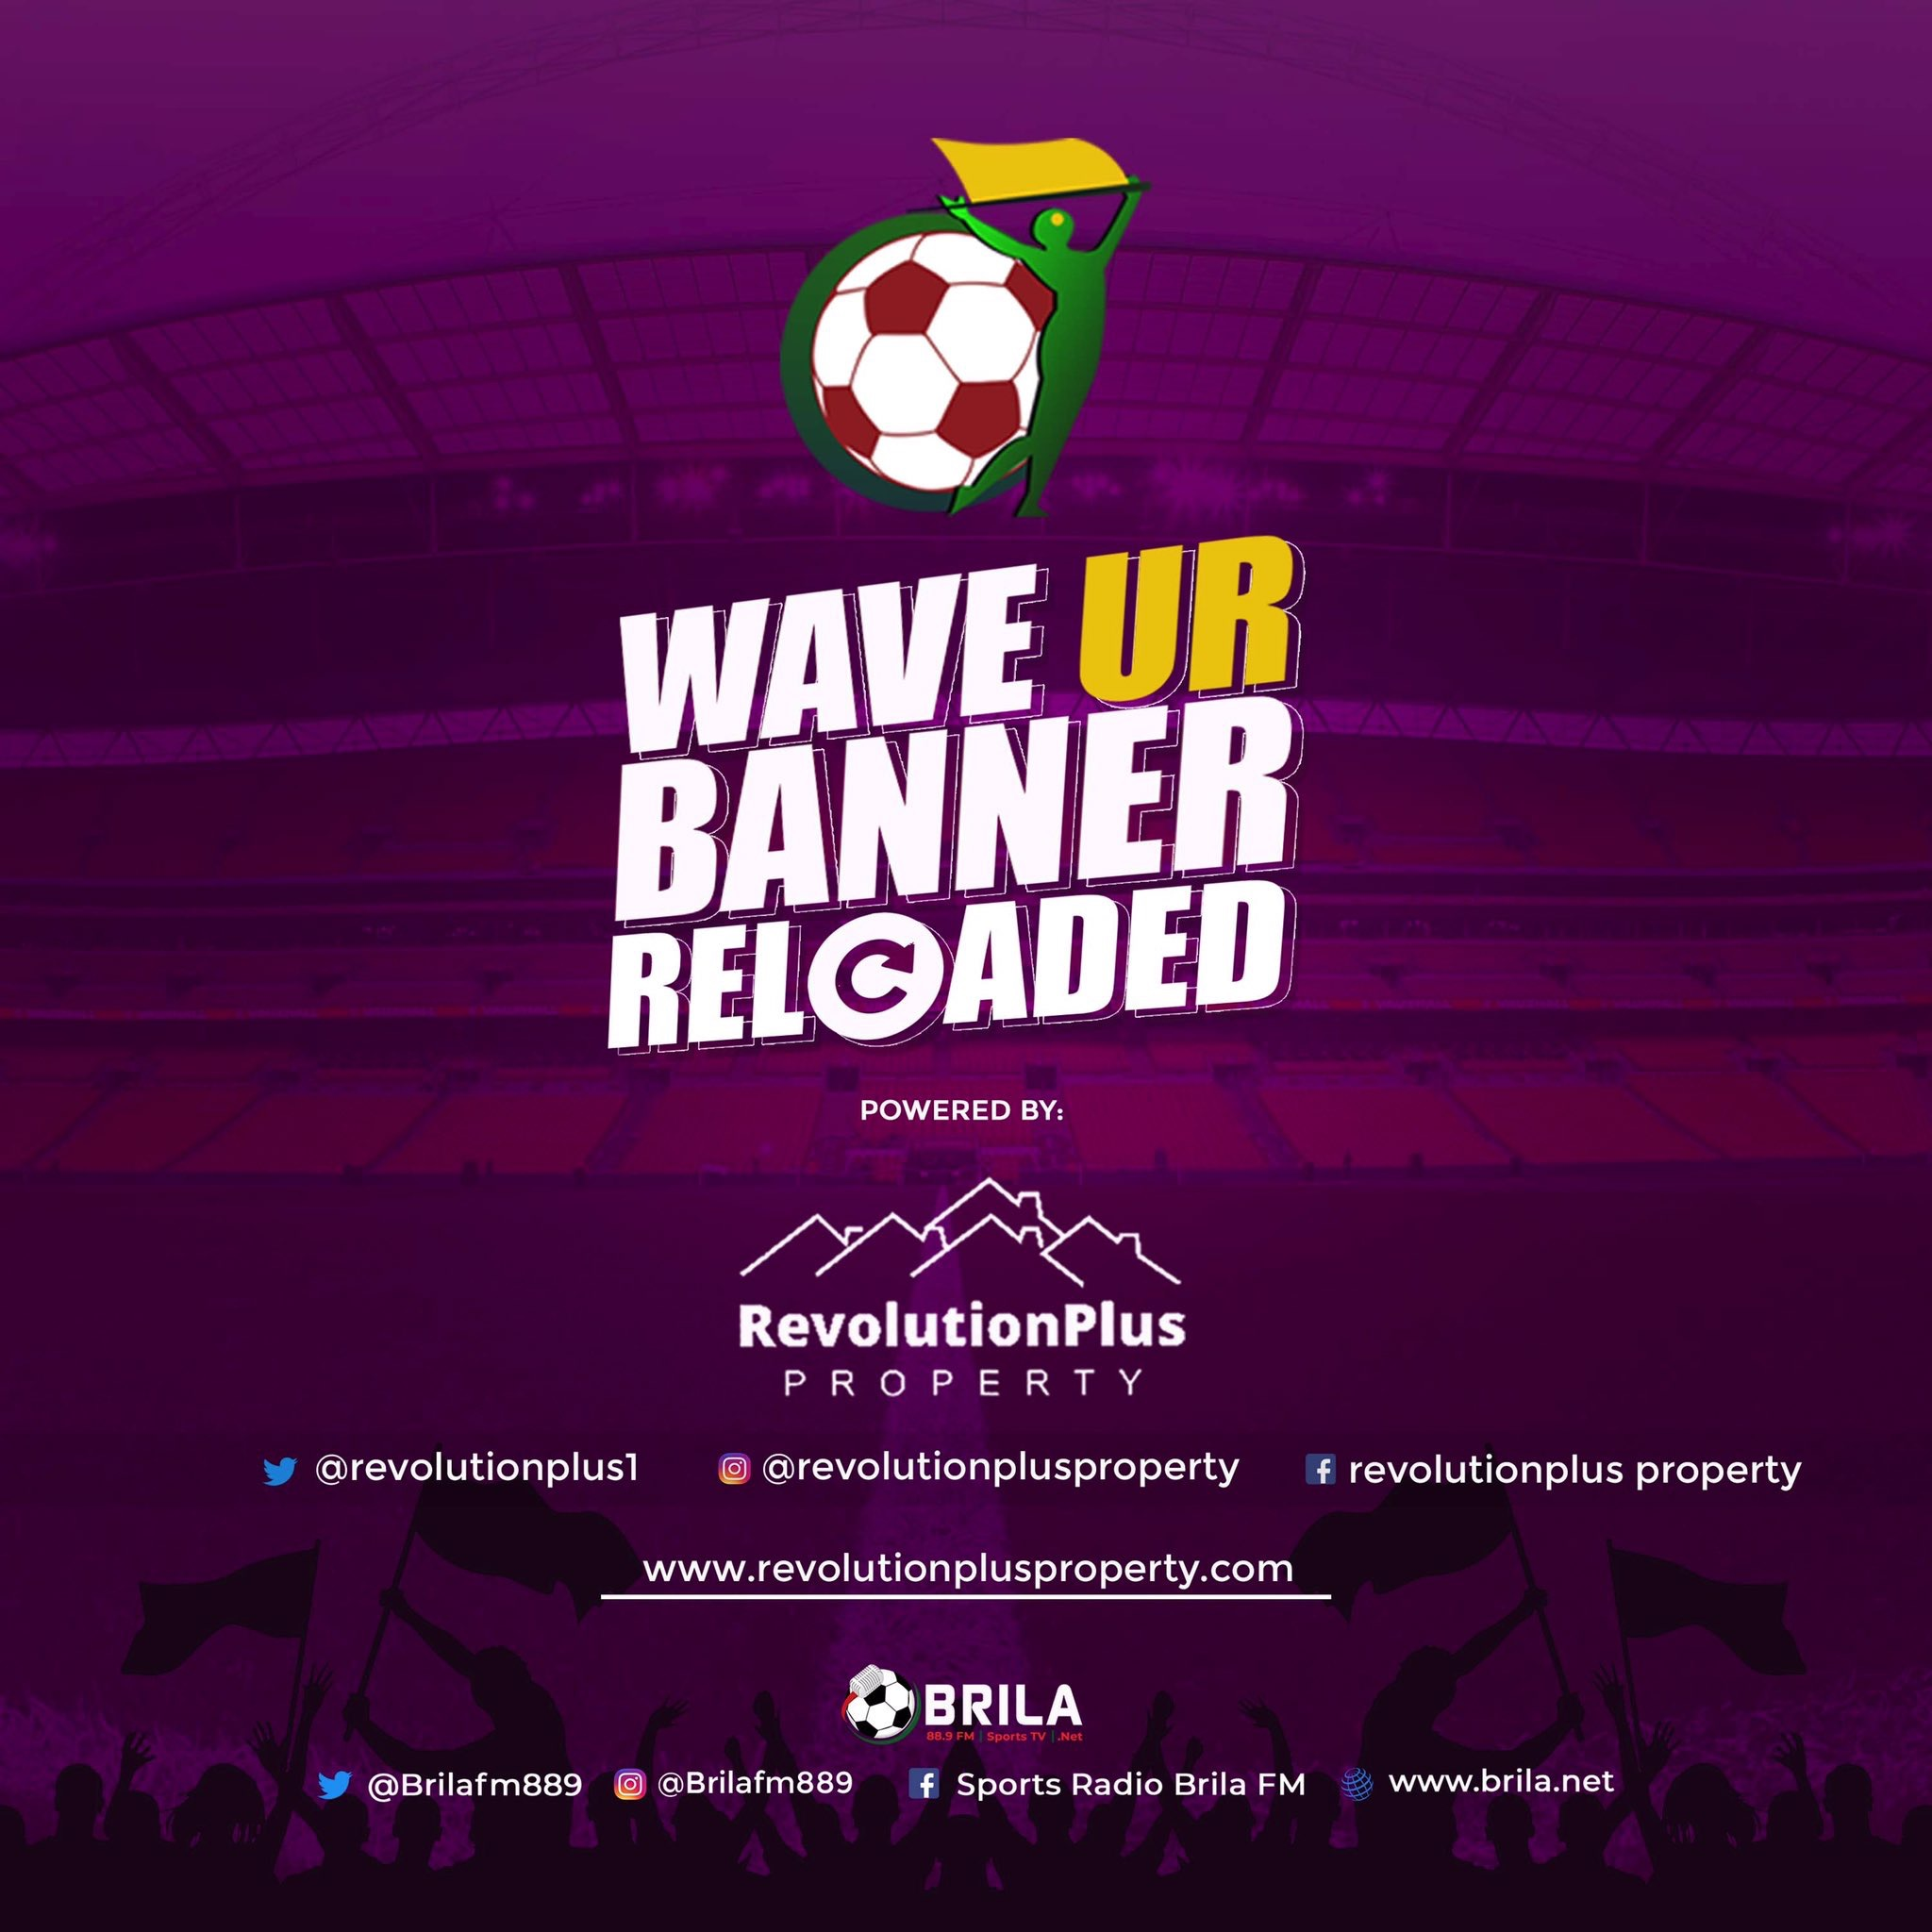 RevolutionPlus'  'Wave Ur Banner Reloaded' kicks off today